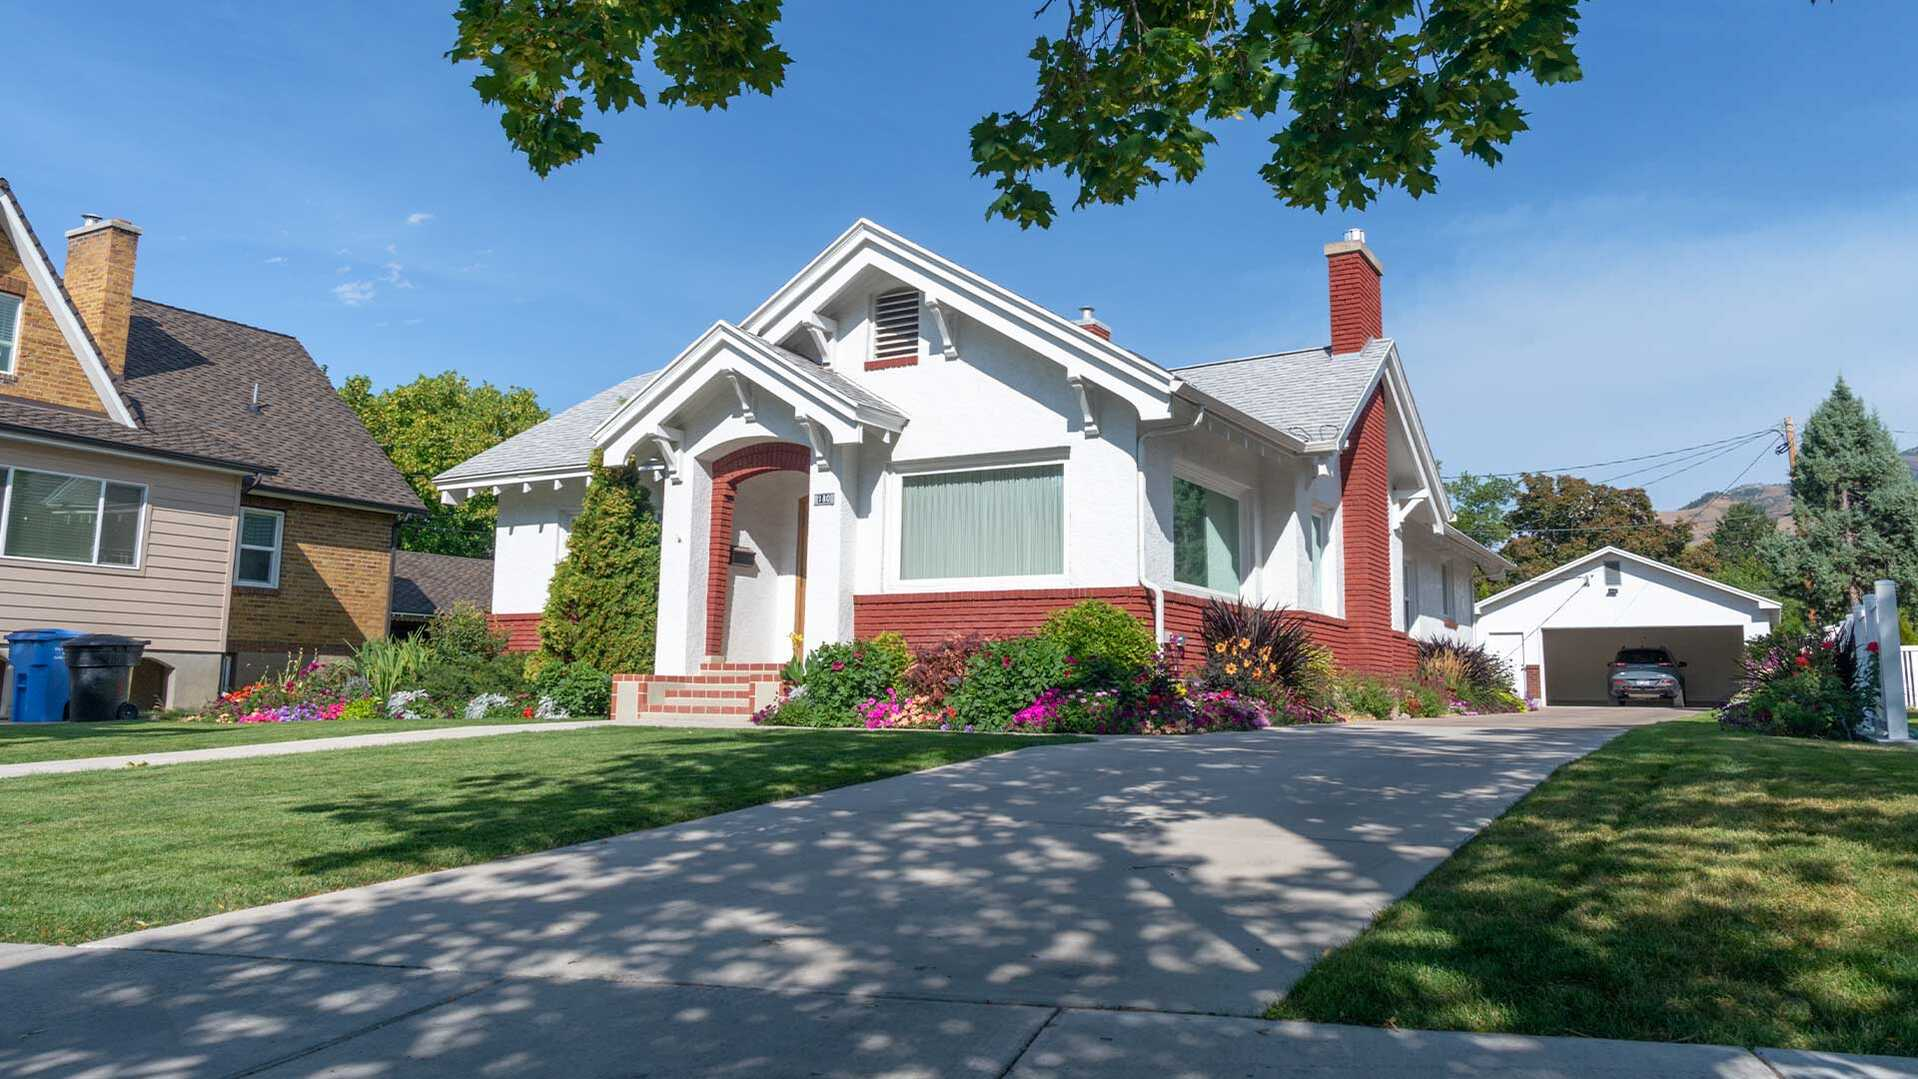 Can You Refinance Your Current Home Before Buying A New One?